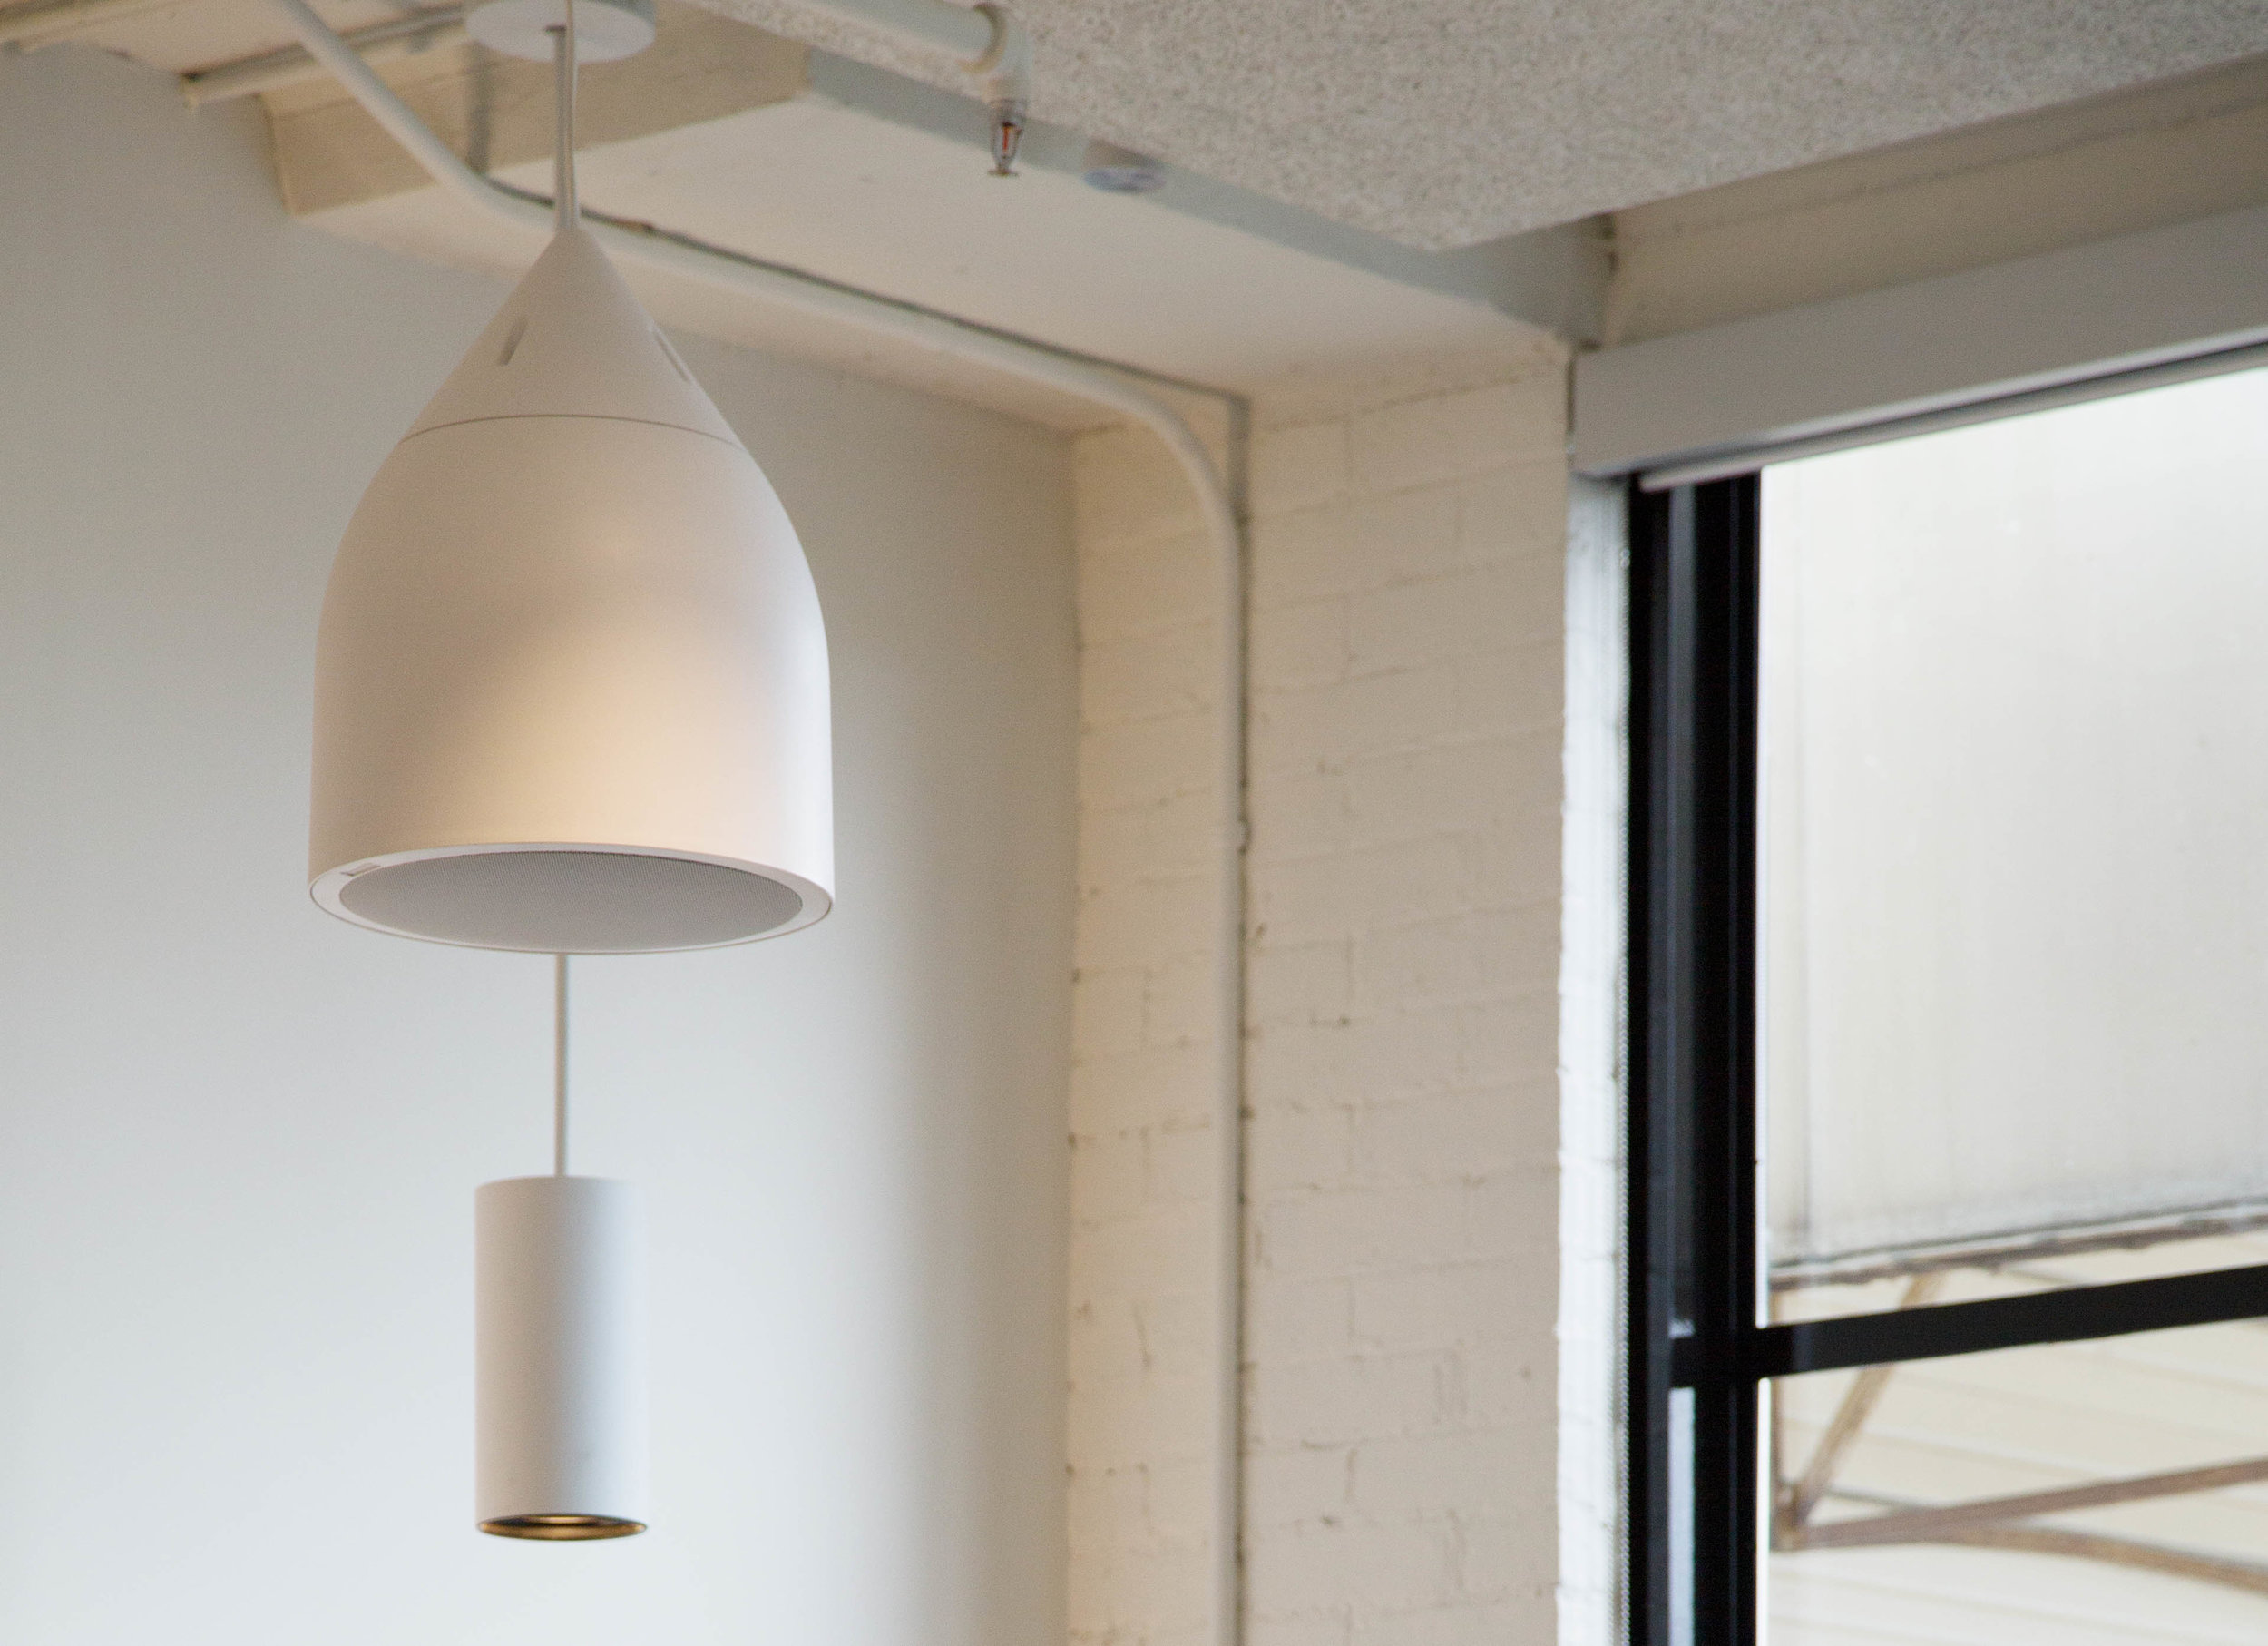 The entirely white ceilings offer both a refined, finished atmosphere, and allow the ample natural light from enormous windows to extend to the depths of the space.